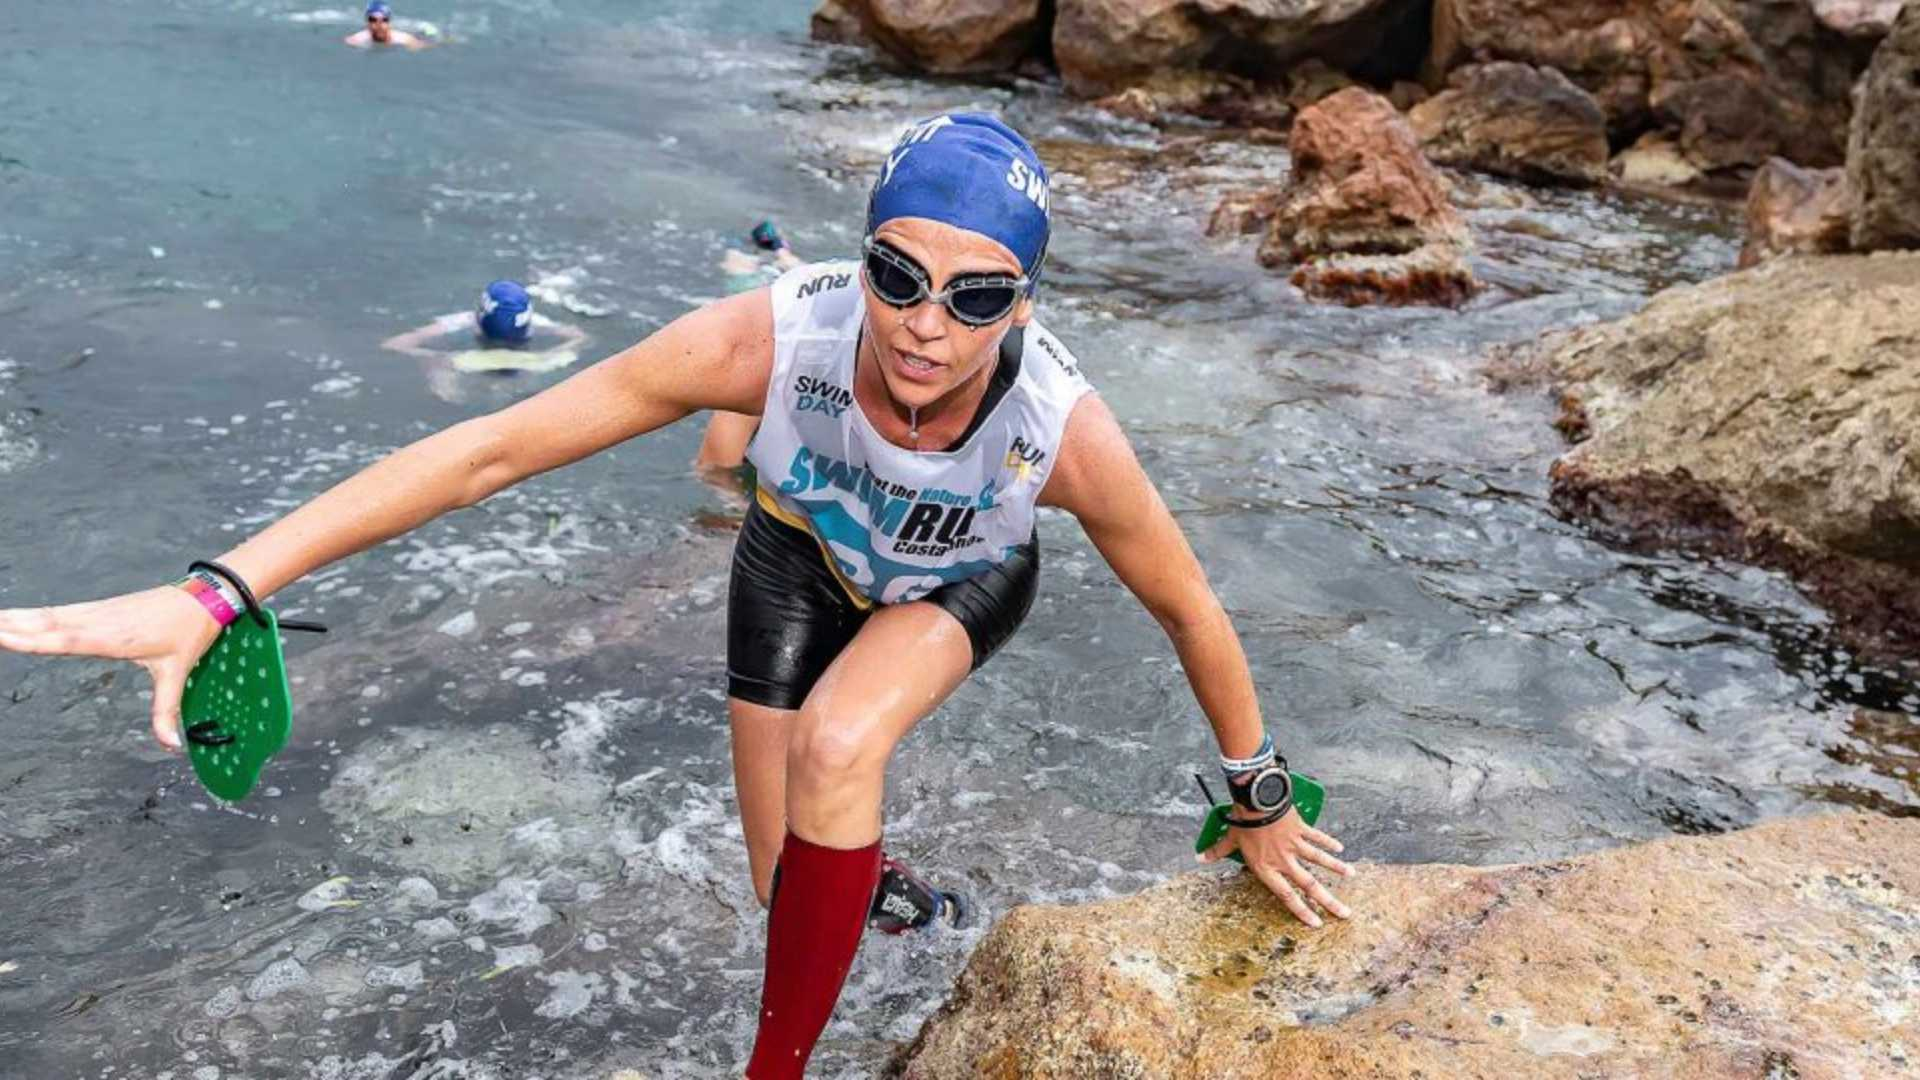 swimrun costa azahar 2020